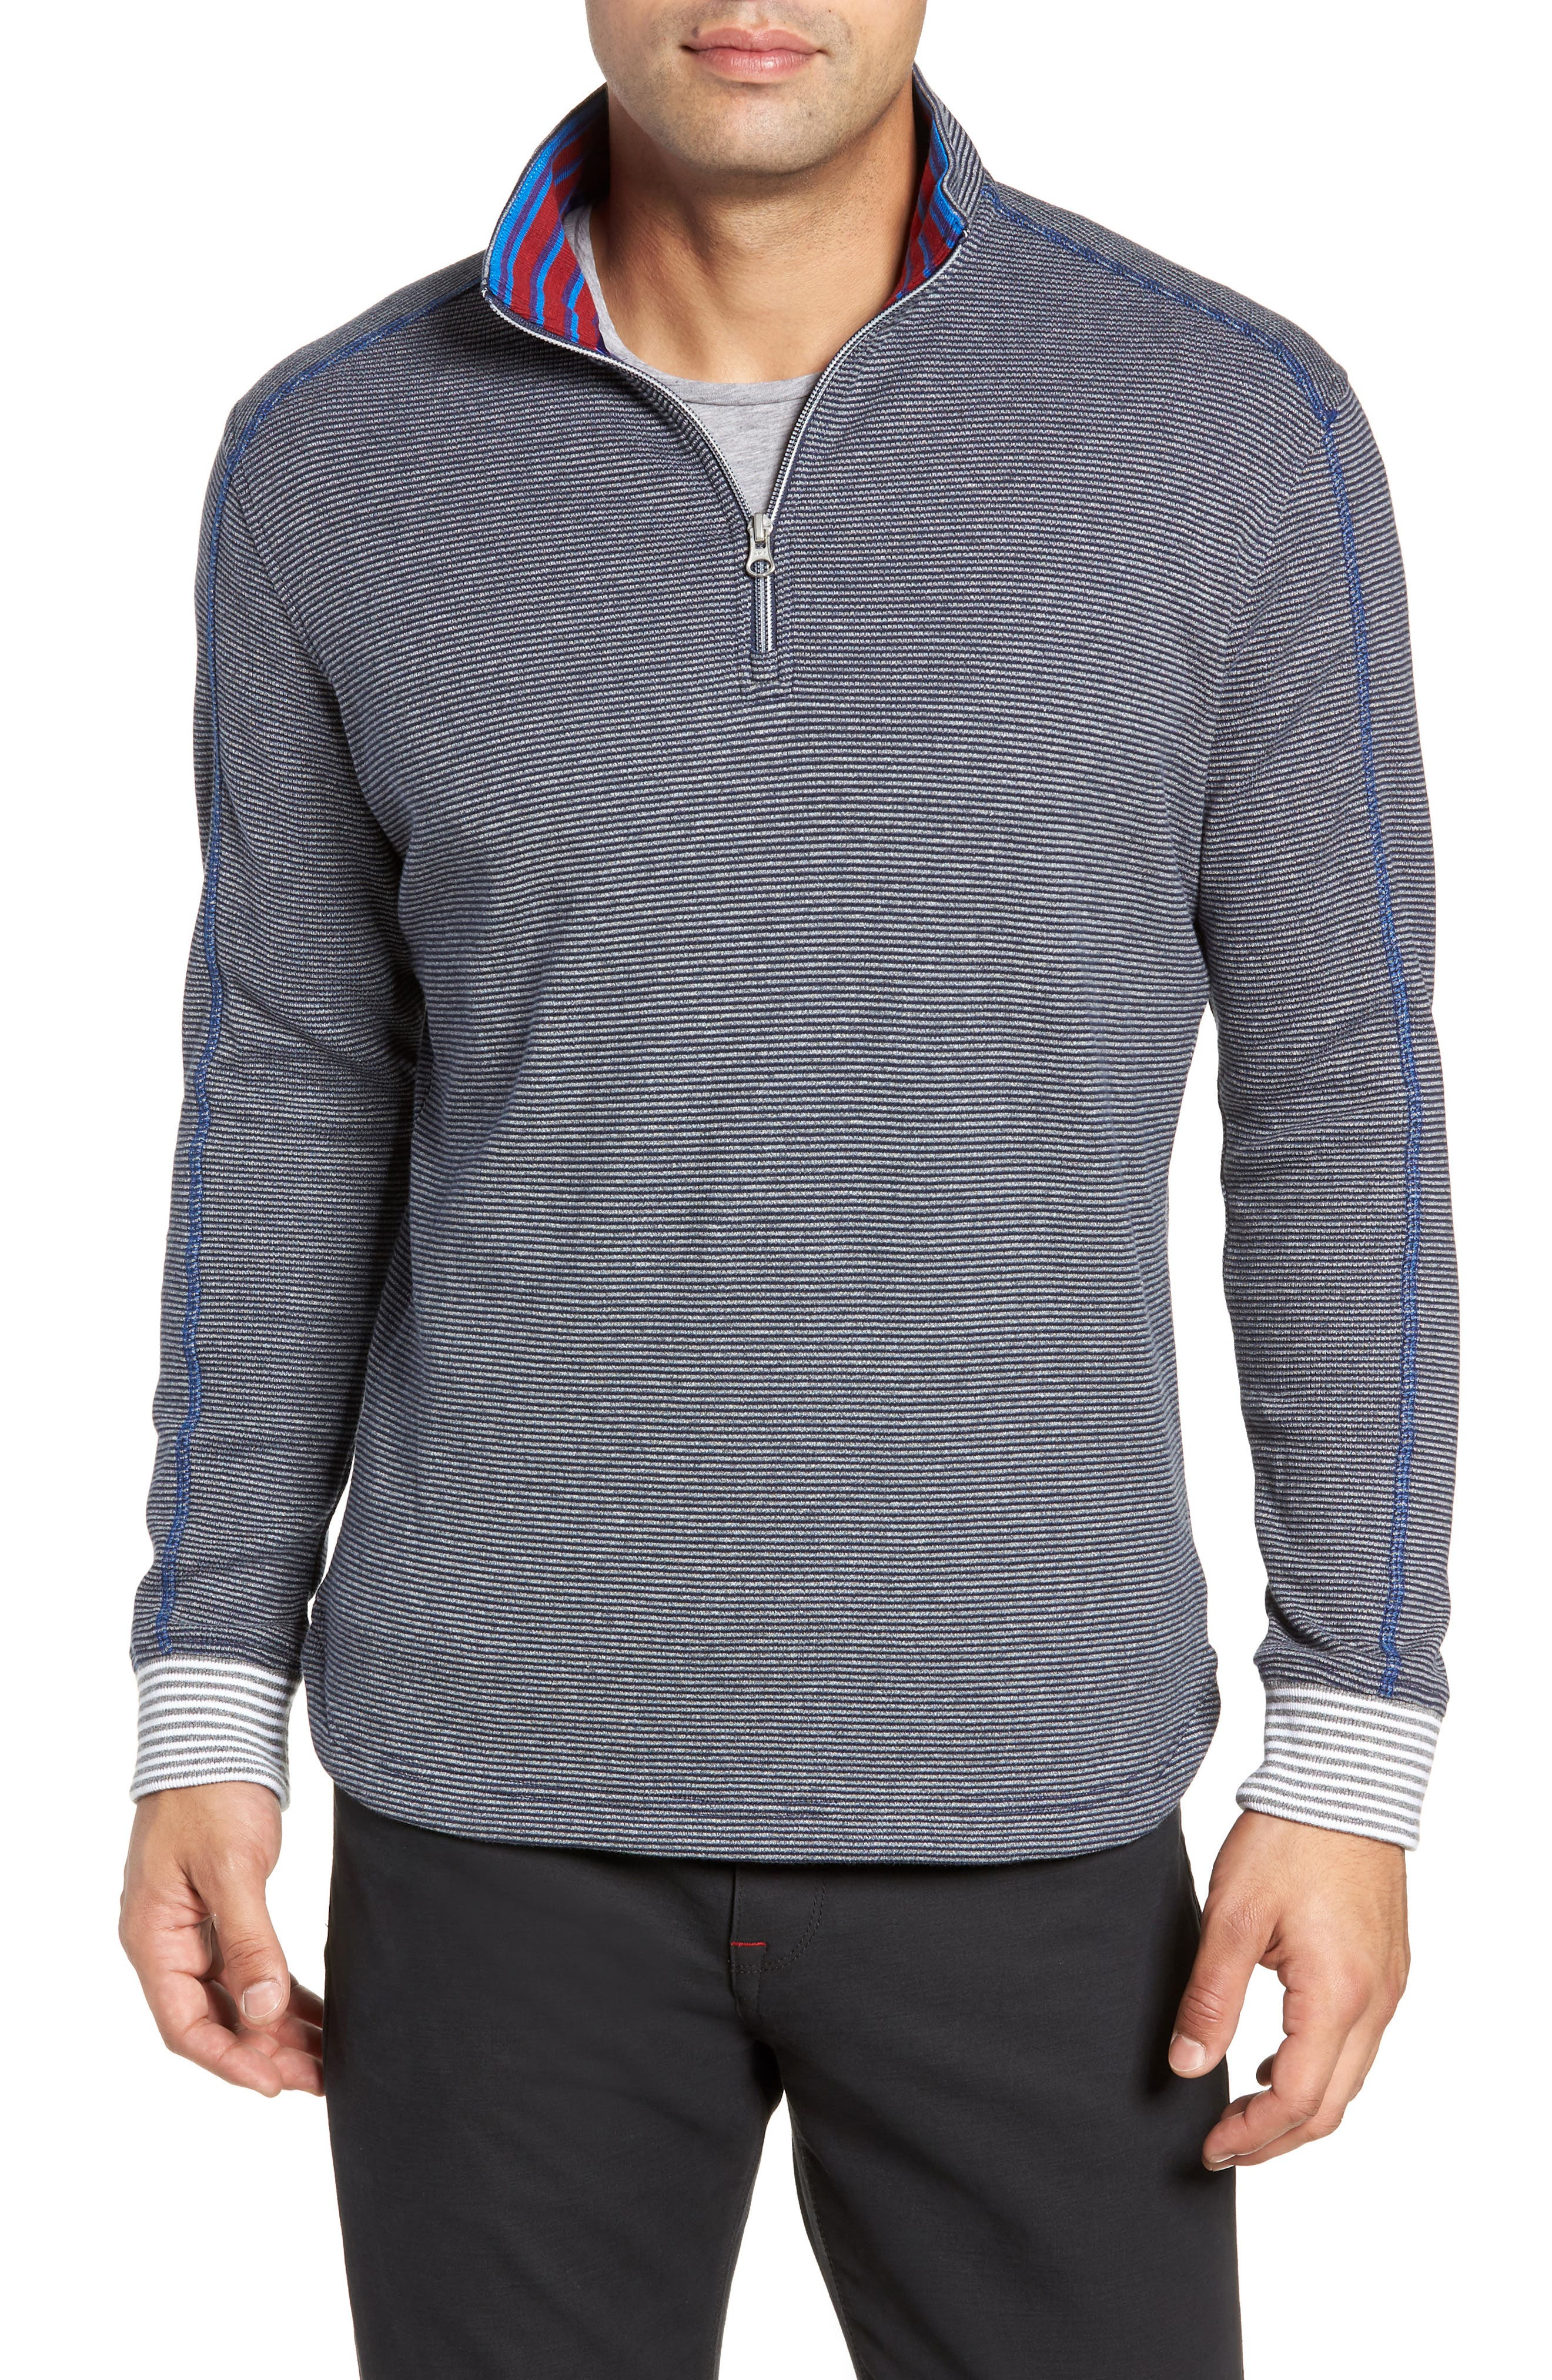 Kitson Classic Fit Stripe Quarter Zip Sweater,                         Main,                         color, HEATHER NAVY